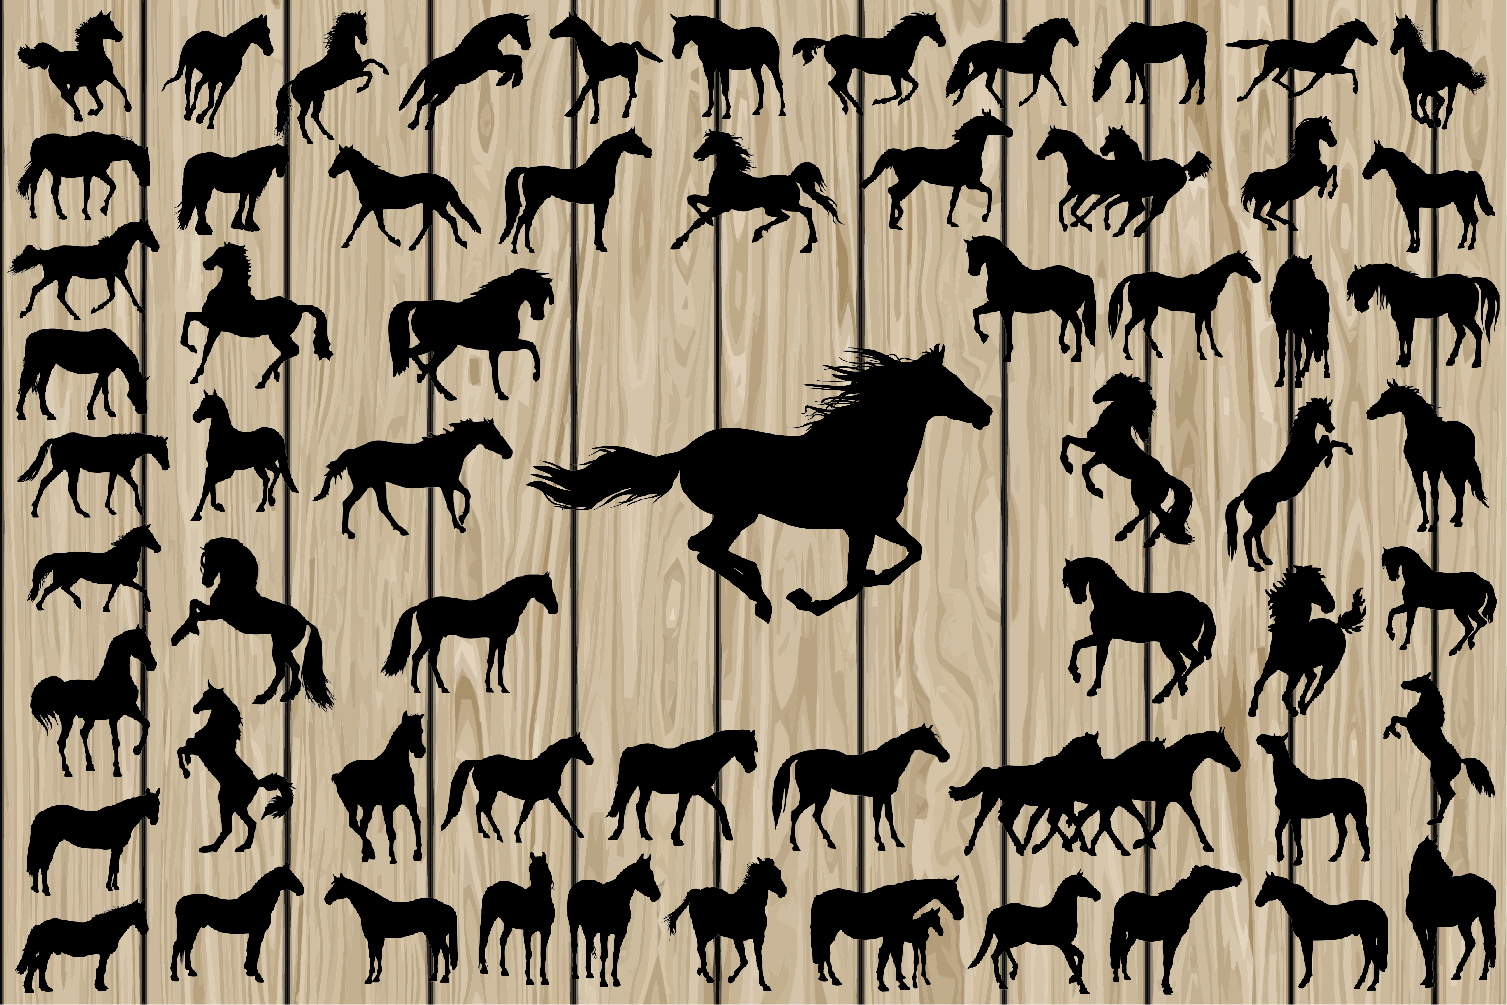 Download Free 62 Horse Silhouettes Svg Graphic By Cosmosfineart Creative Fabrica for Cricut Explore, Silhouette and other cutting machines.